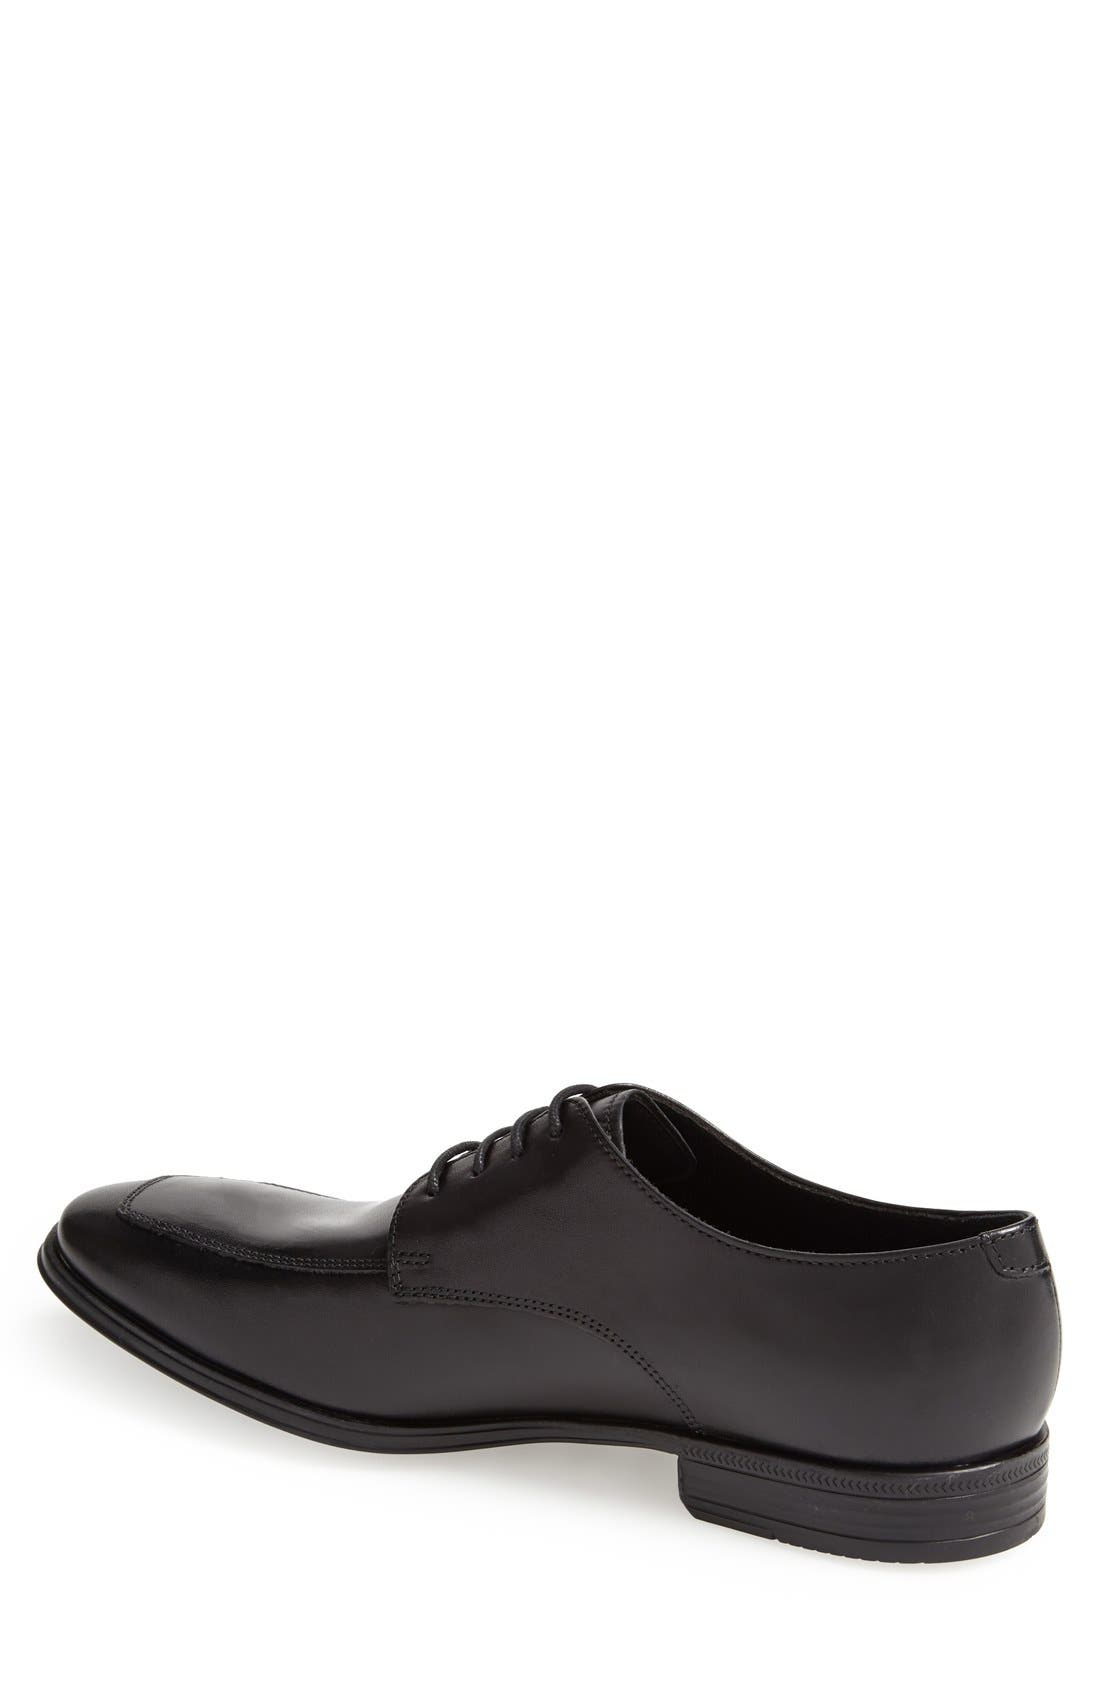 Alternate Image 2  - Cole Haan 'Air Adams' Oxford (Men) (Online Only)